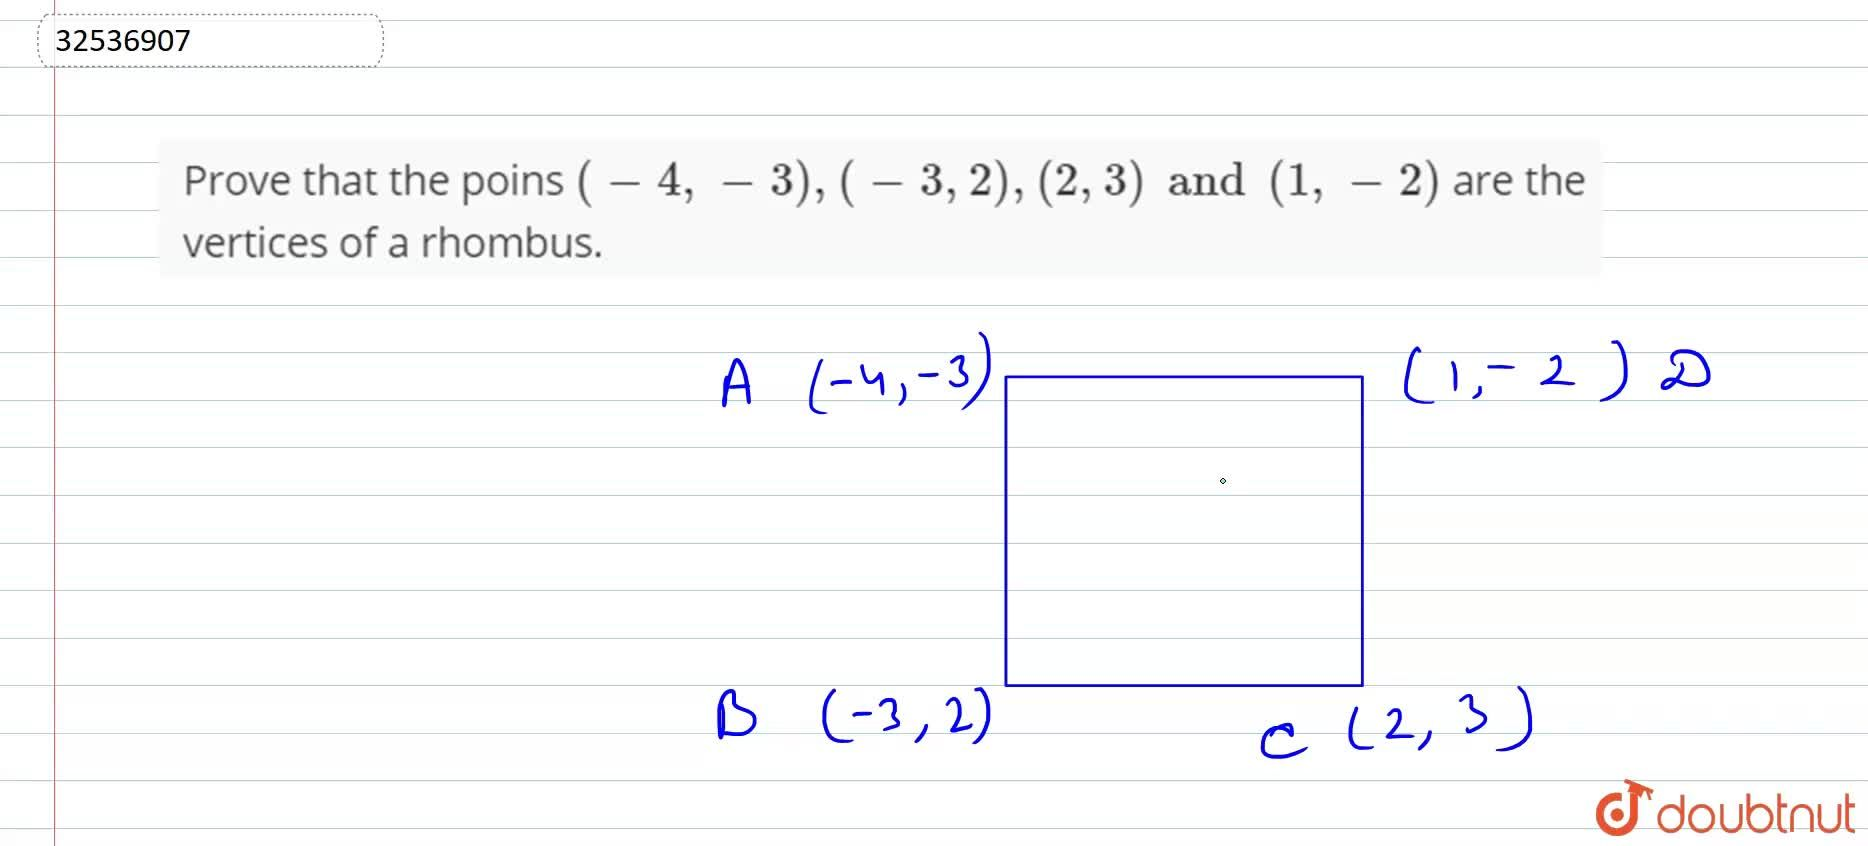 Solution for Prove that the poins (-4, -3), (-3, 2), (2, 3) an